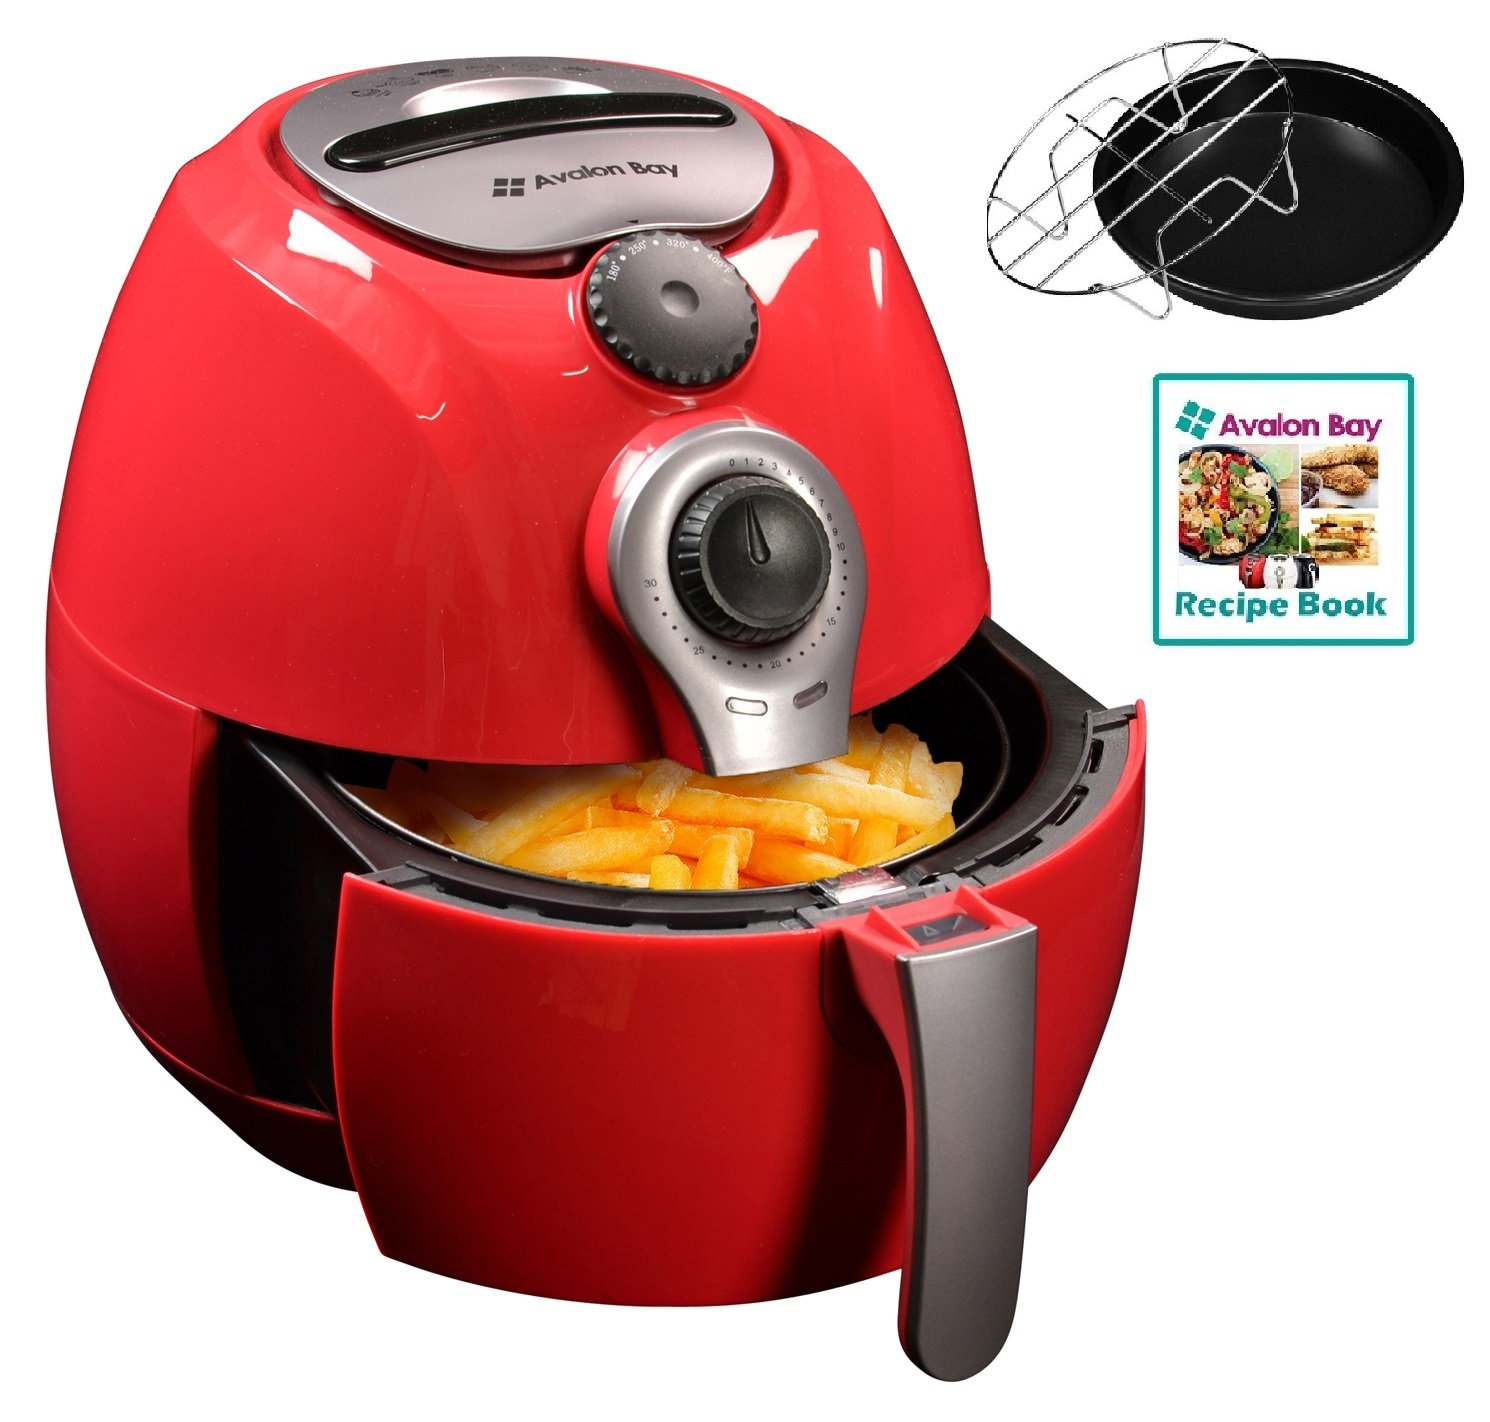 Avalon Bay Air Fryer, For Healthy Oil-Less Fried Food, 3.7 Quart Capacity, Includes Free Airfryer Baking Set and Recipe Book, Red, AB-Airfryer100R